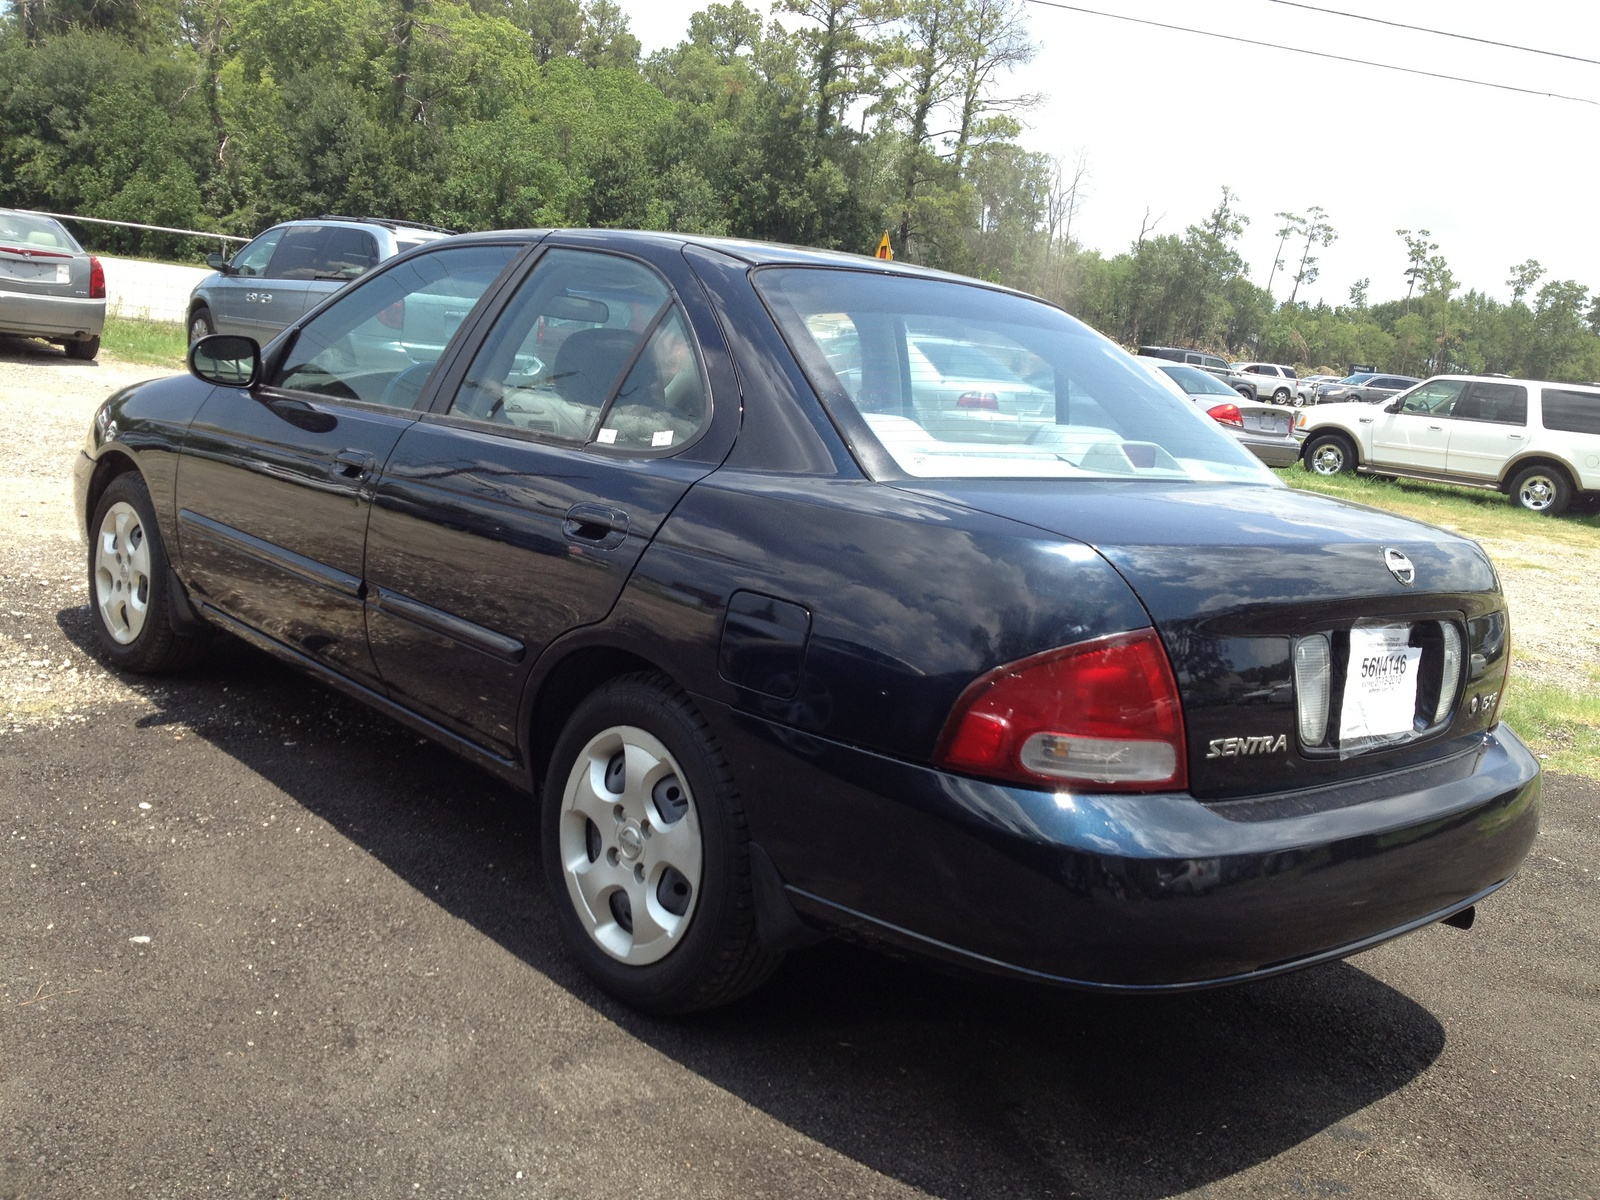 Bmwpact Car.Bmw Youngstown Bmwpact Car Bmwpact 320td Honda ...